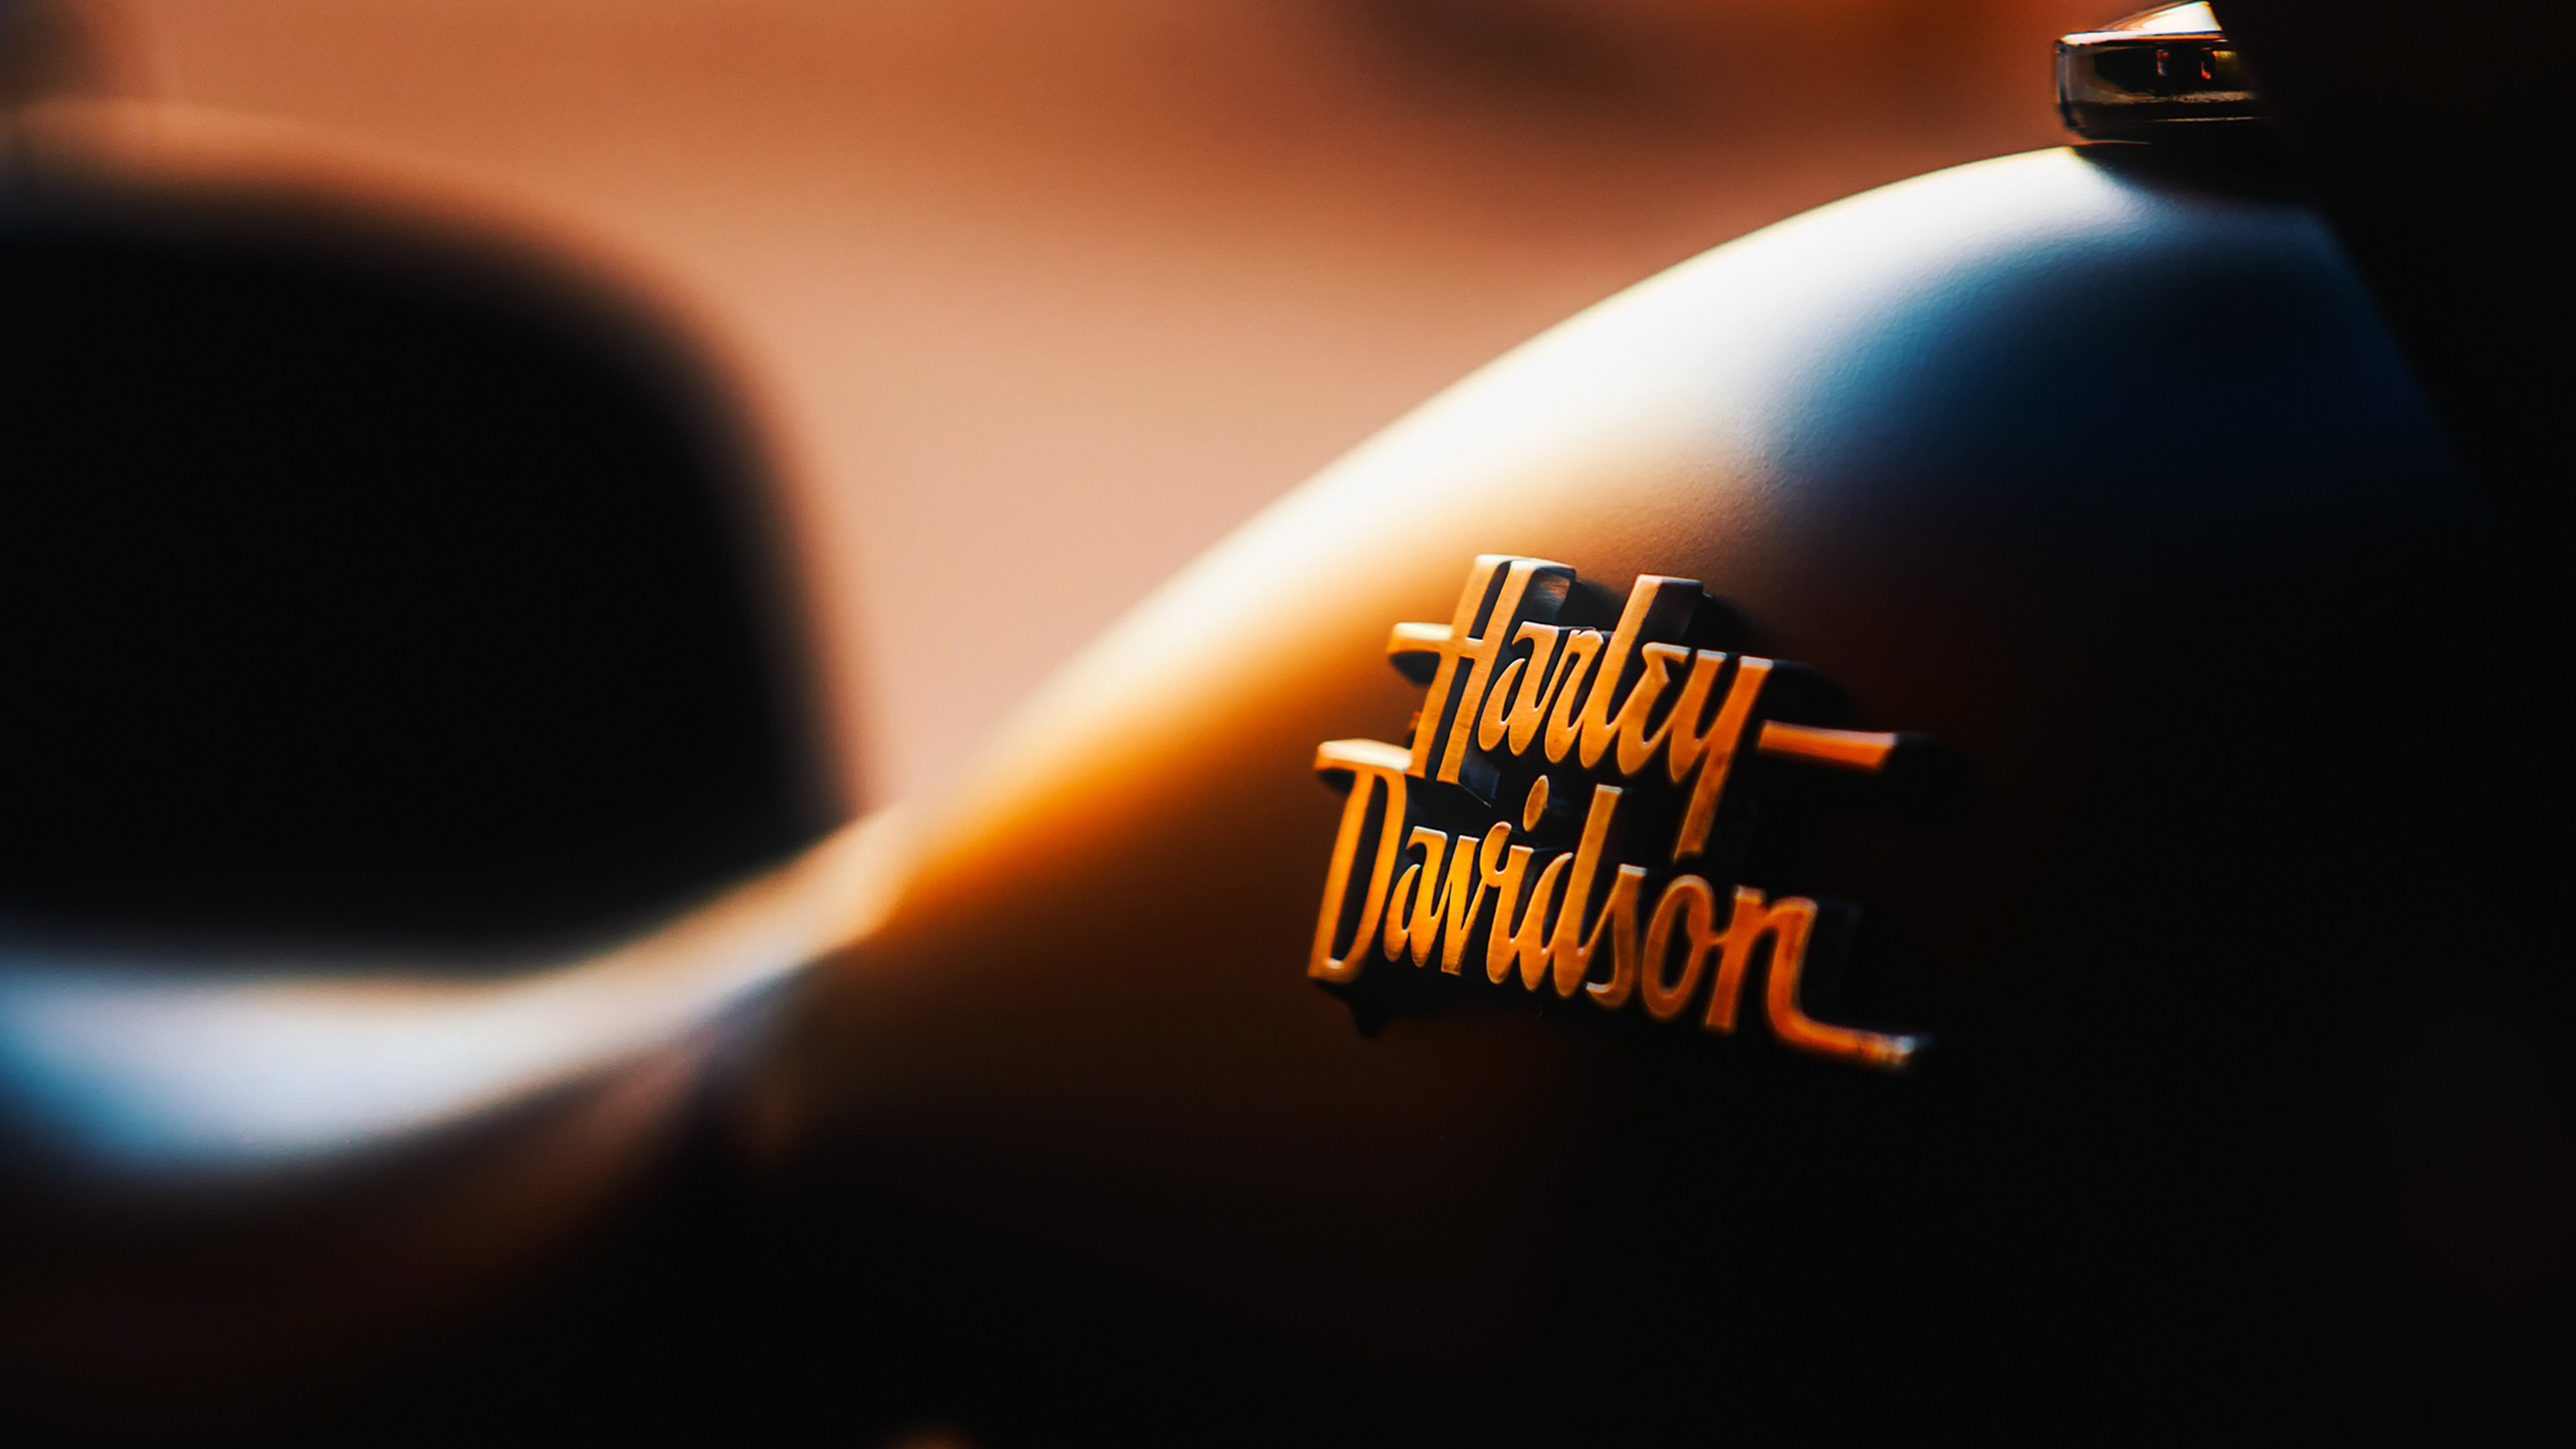 harley davidson bike logo wallpaper background hd 62960